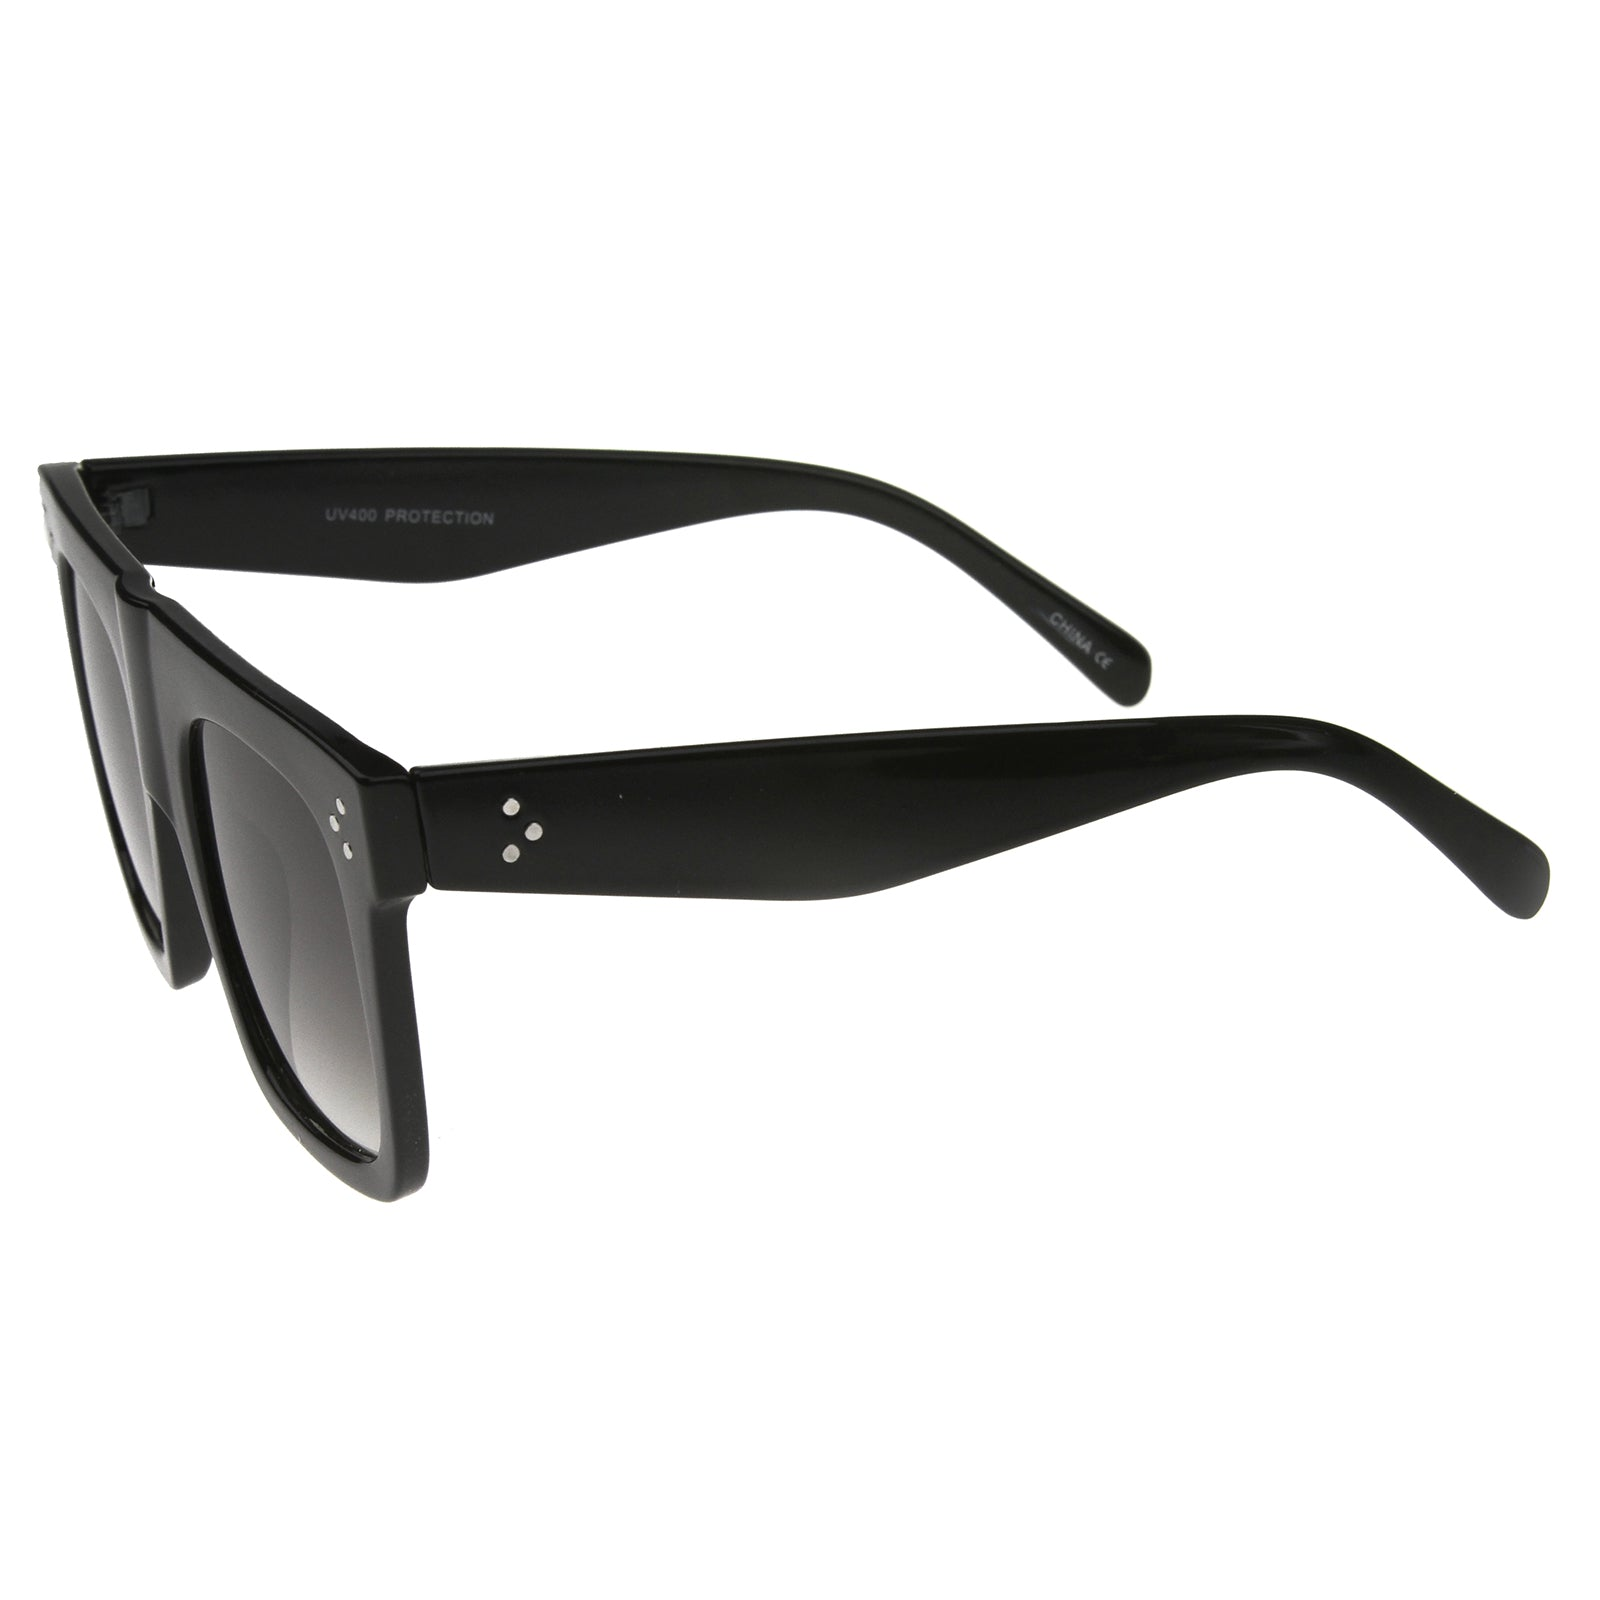 Modern Fashion Bold Flat Top Square Horn Rimmed Sunglasses 50mm - sunglass.la - 11